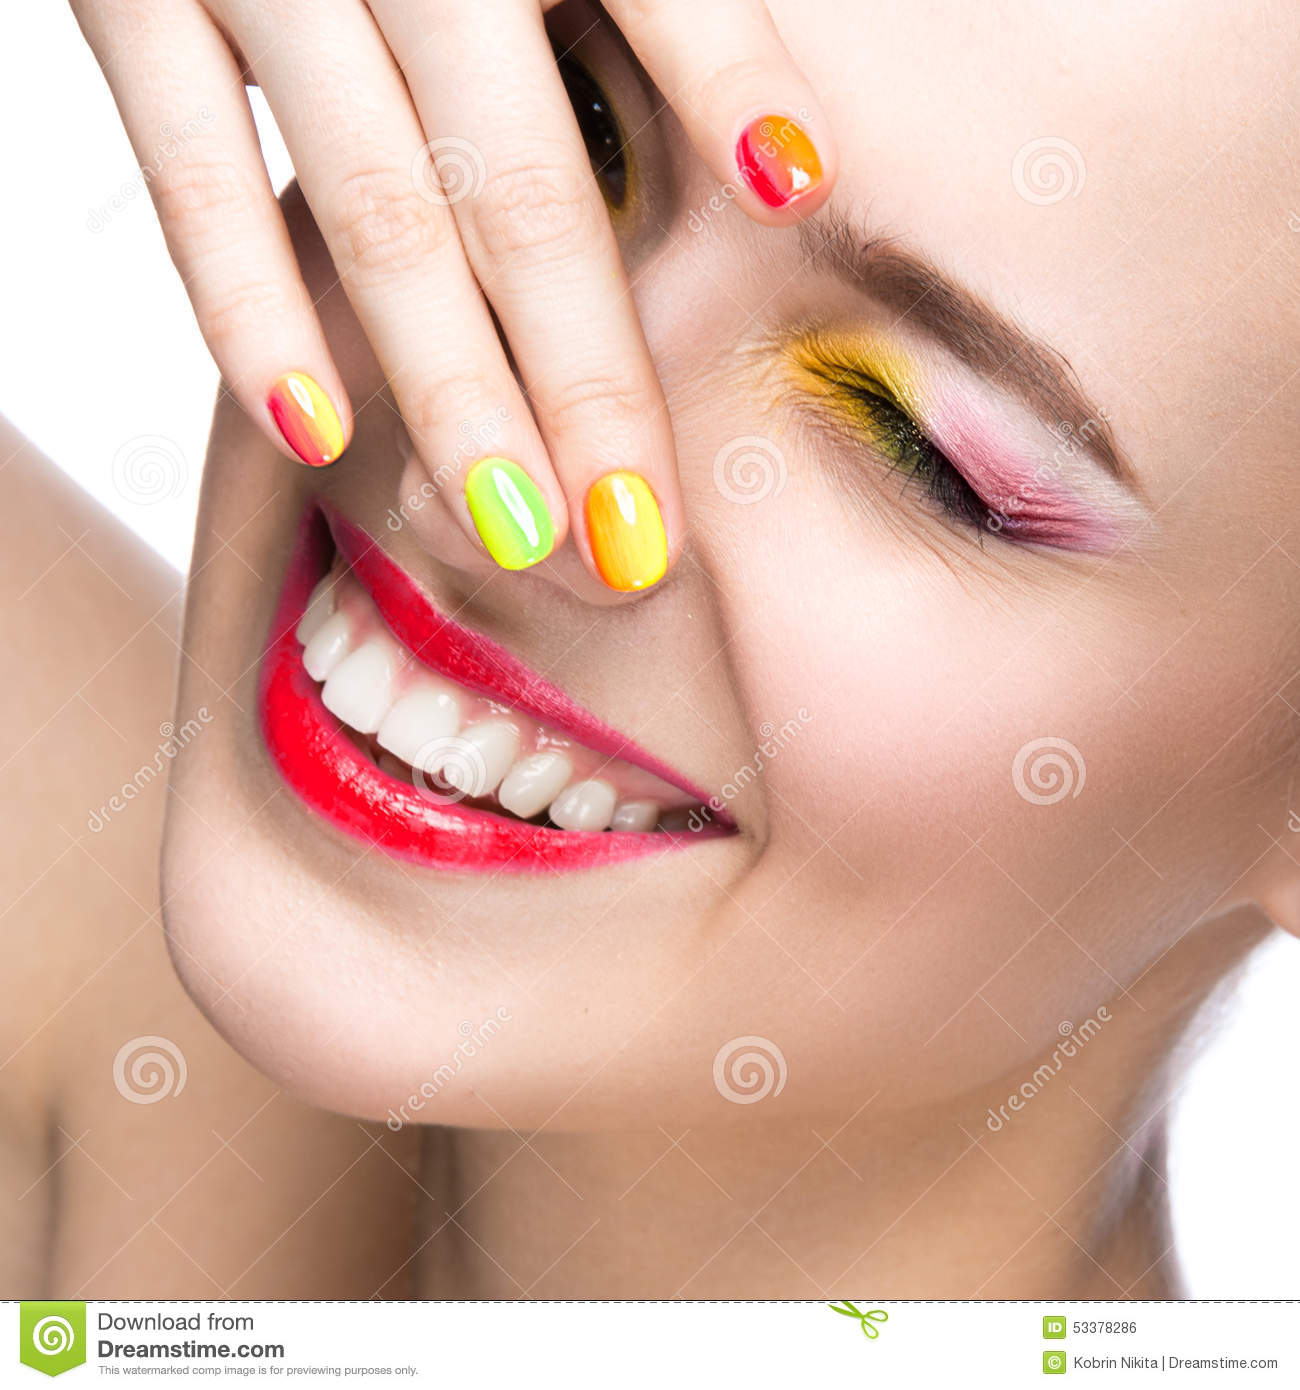 beautiful model girl with bright colored makeup and nail polish in the summer image beauty face. Black Bedroom Furniture Sets. Home Design Ideas